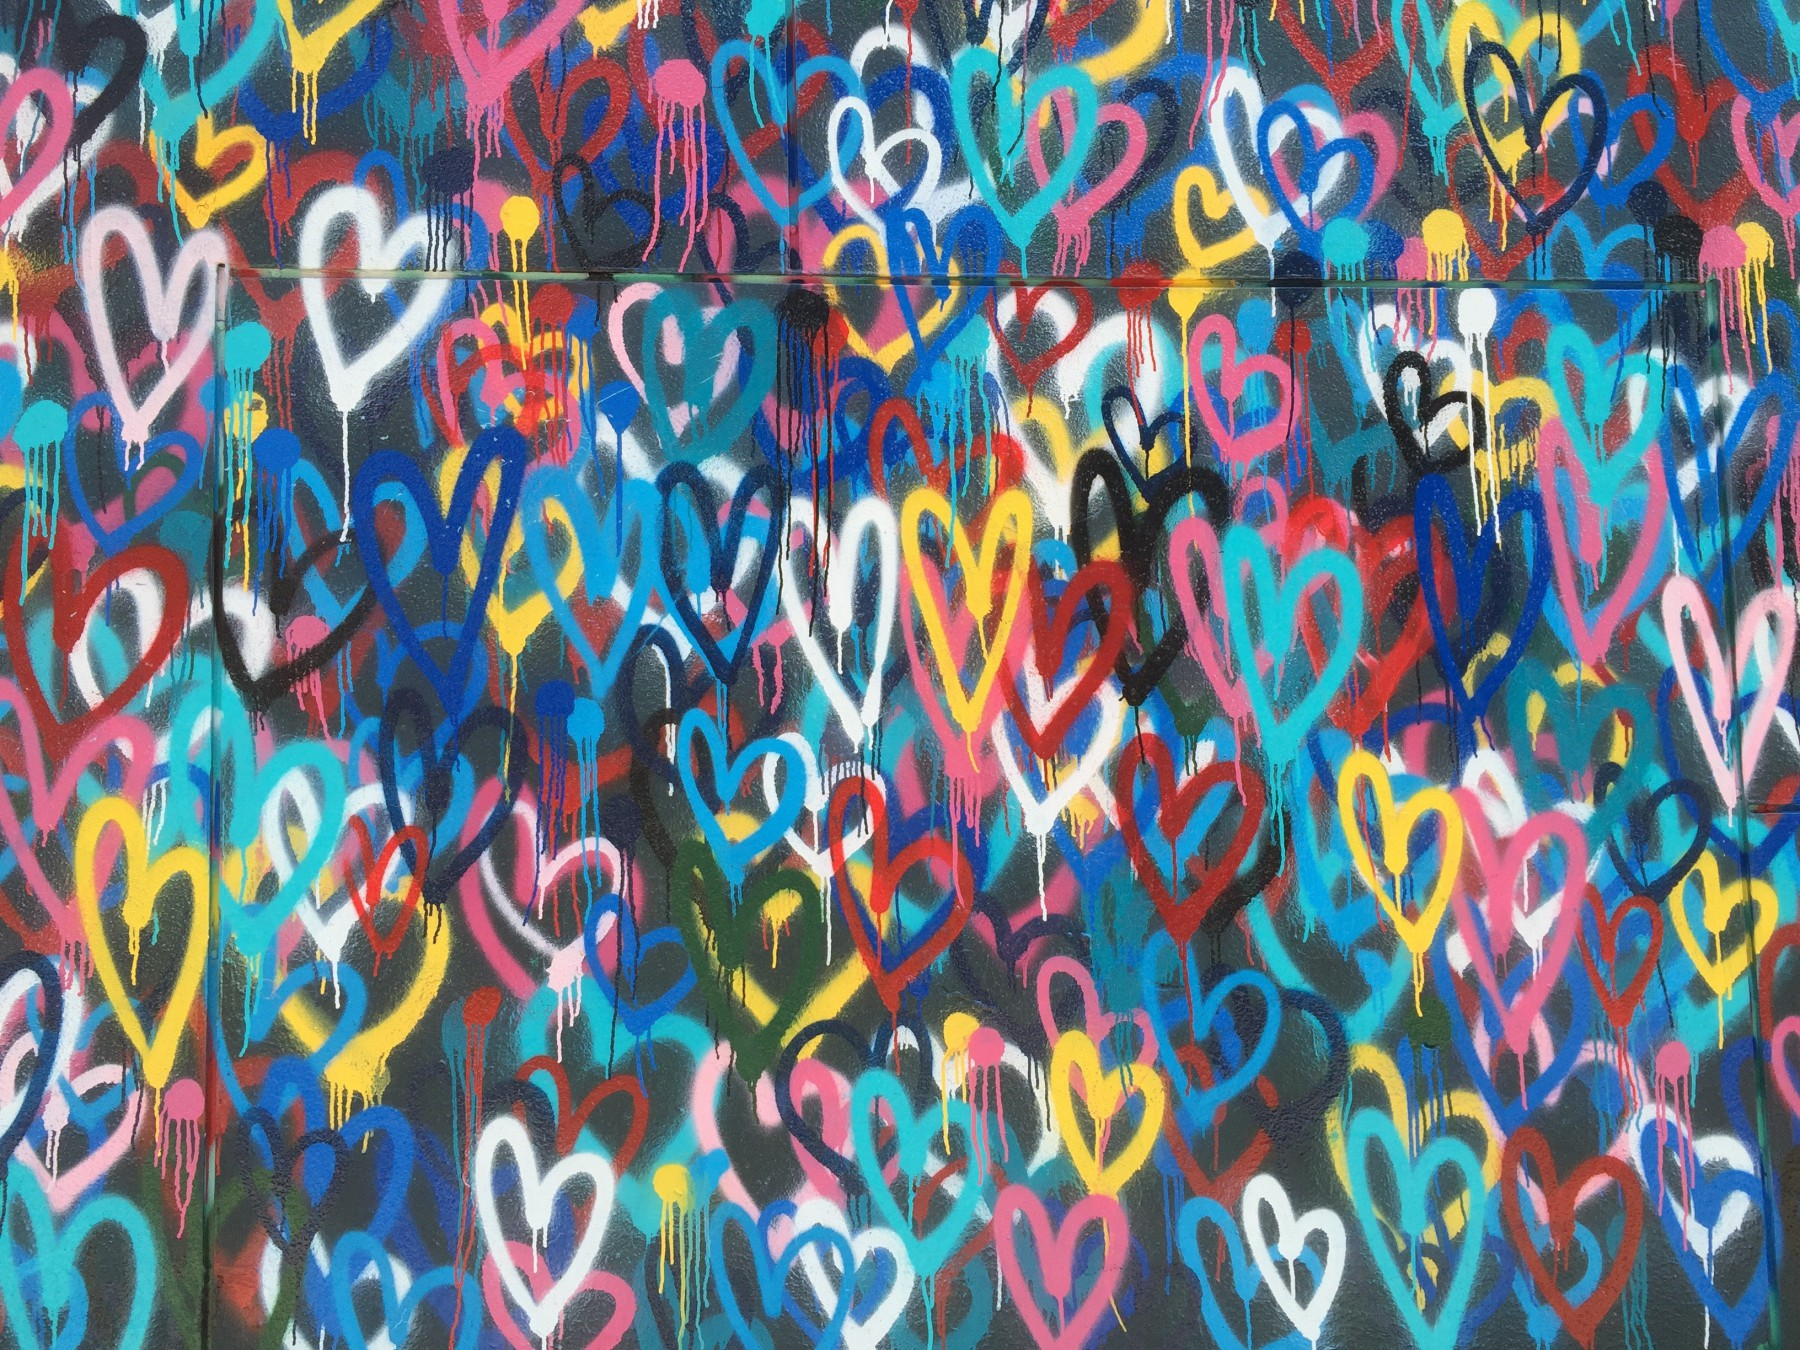 colorful hearts in graffiti